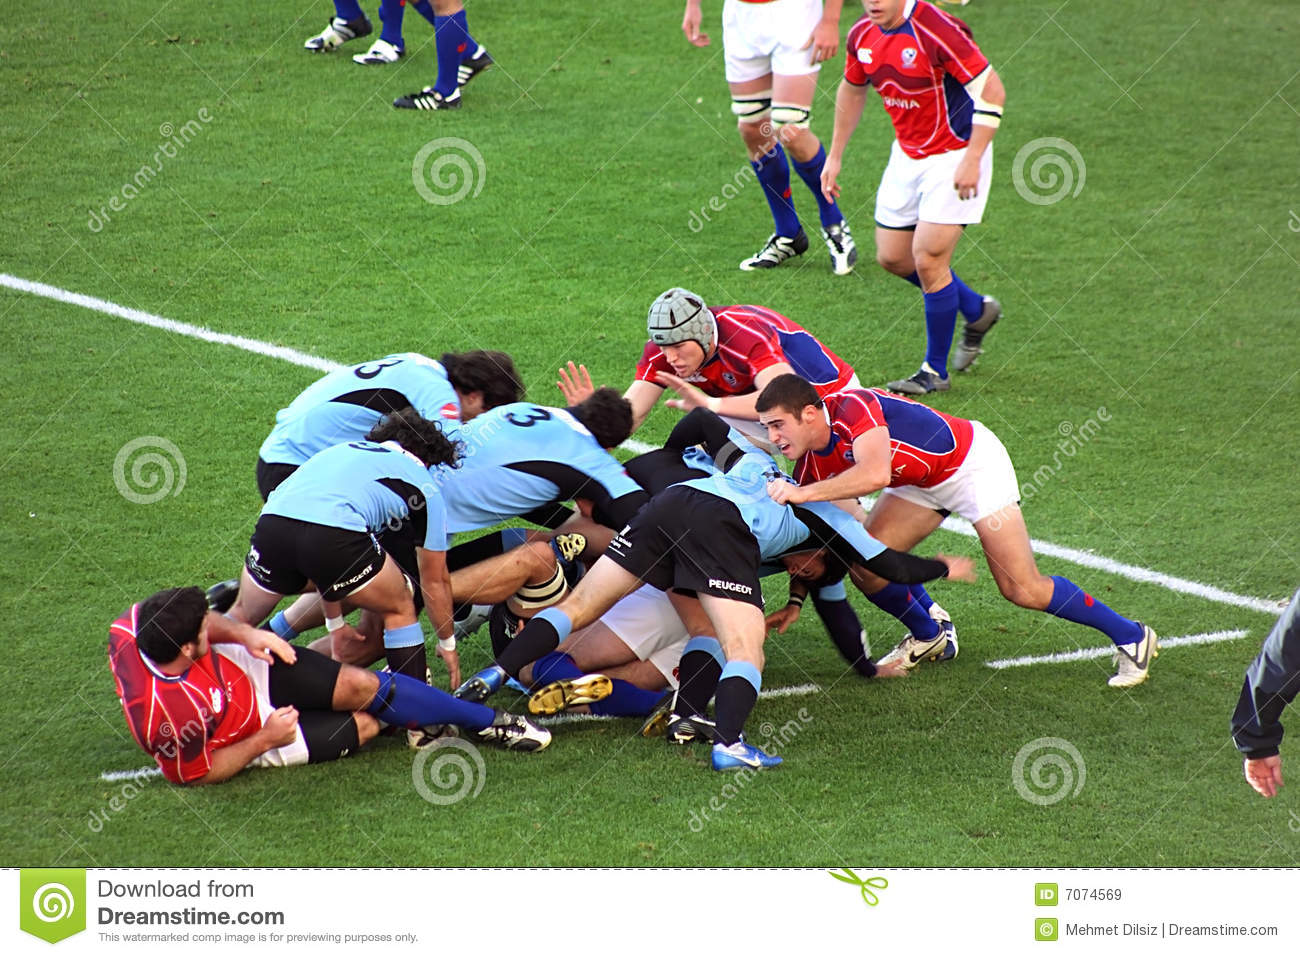 USA Eagles Vs Uruguay - Rugby Game Editorial Stock Image - Image: 7074569